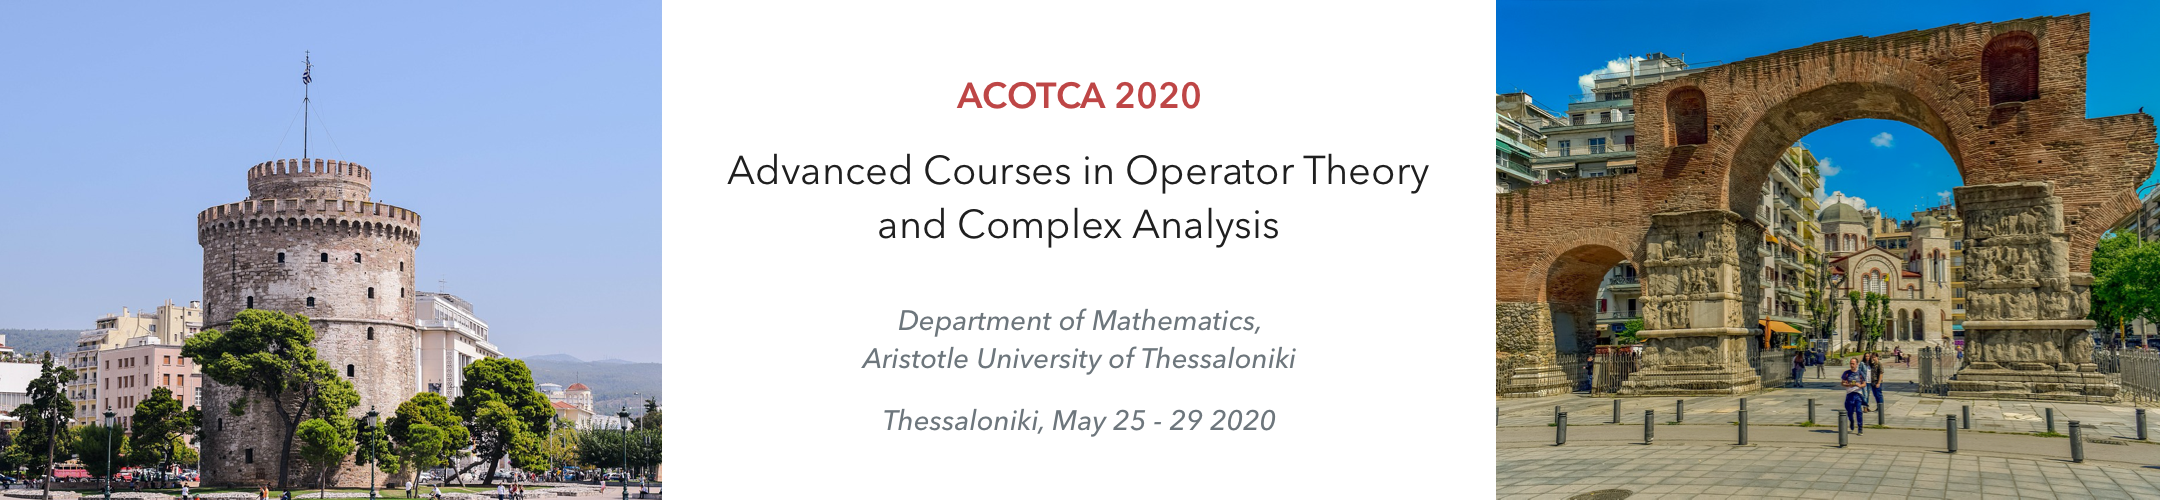 Advanced Courses in Operator Theory and Complex Analysis